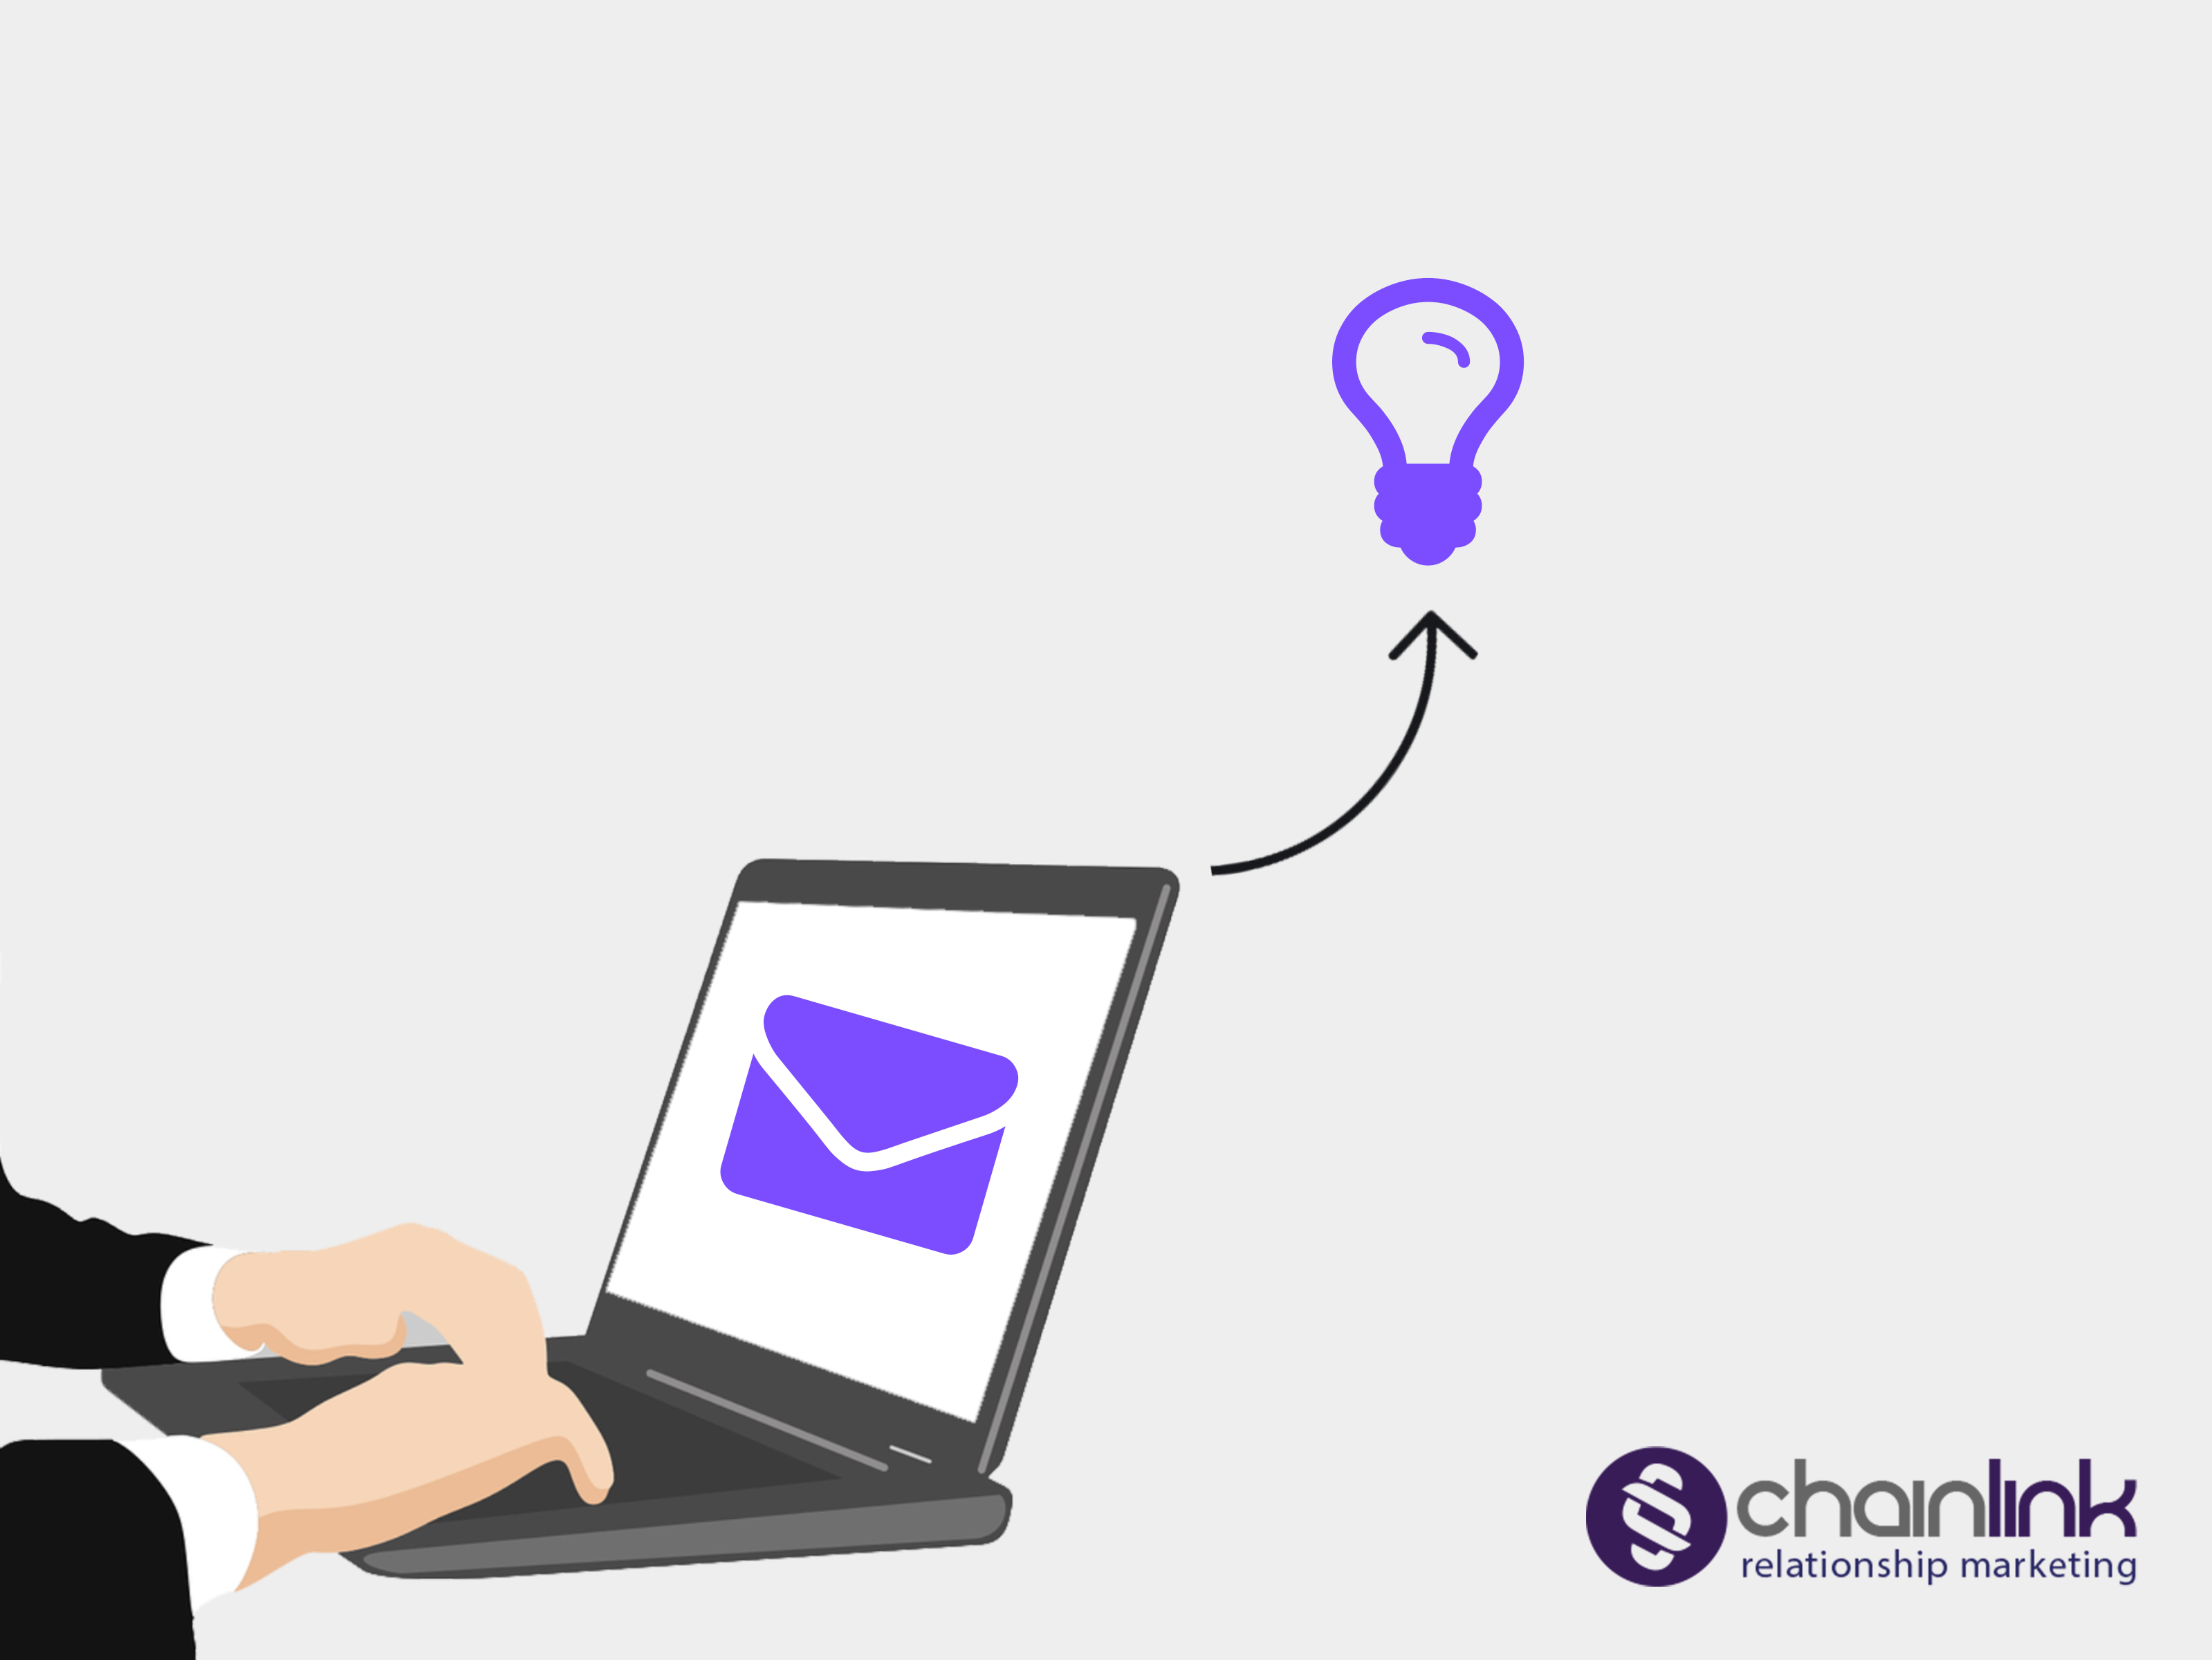 Lifecycle Email Marketing -Chainlink Relationship Marketing